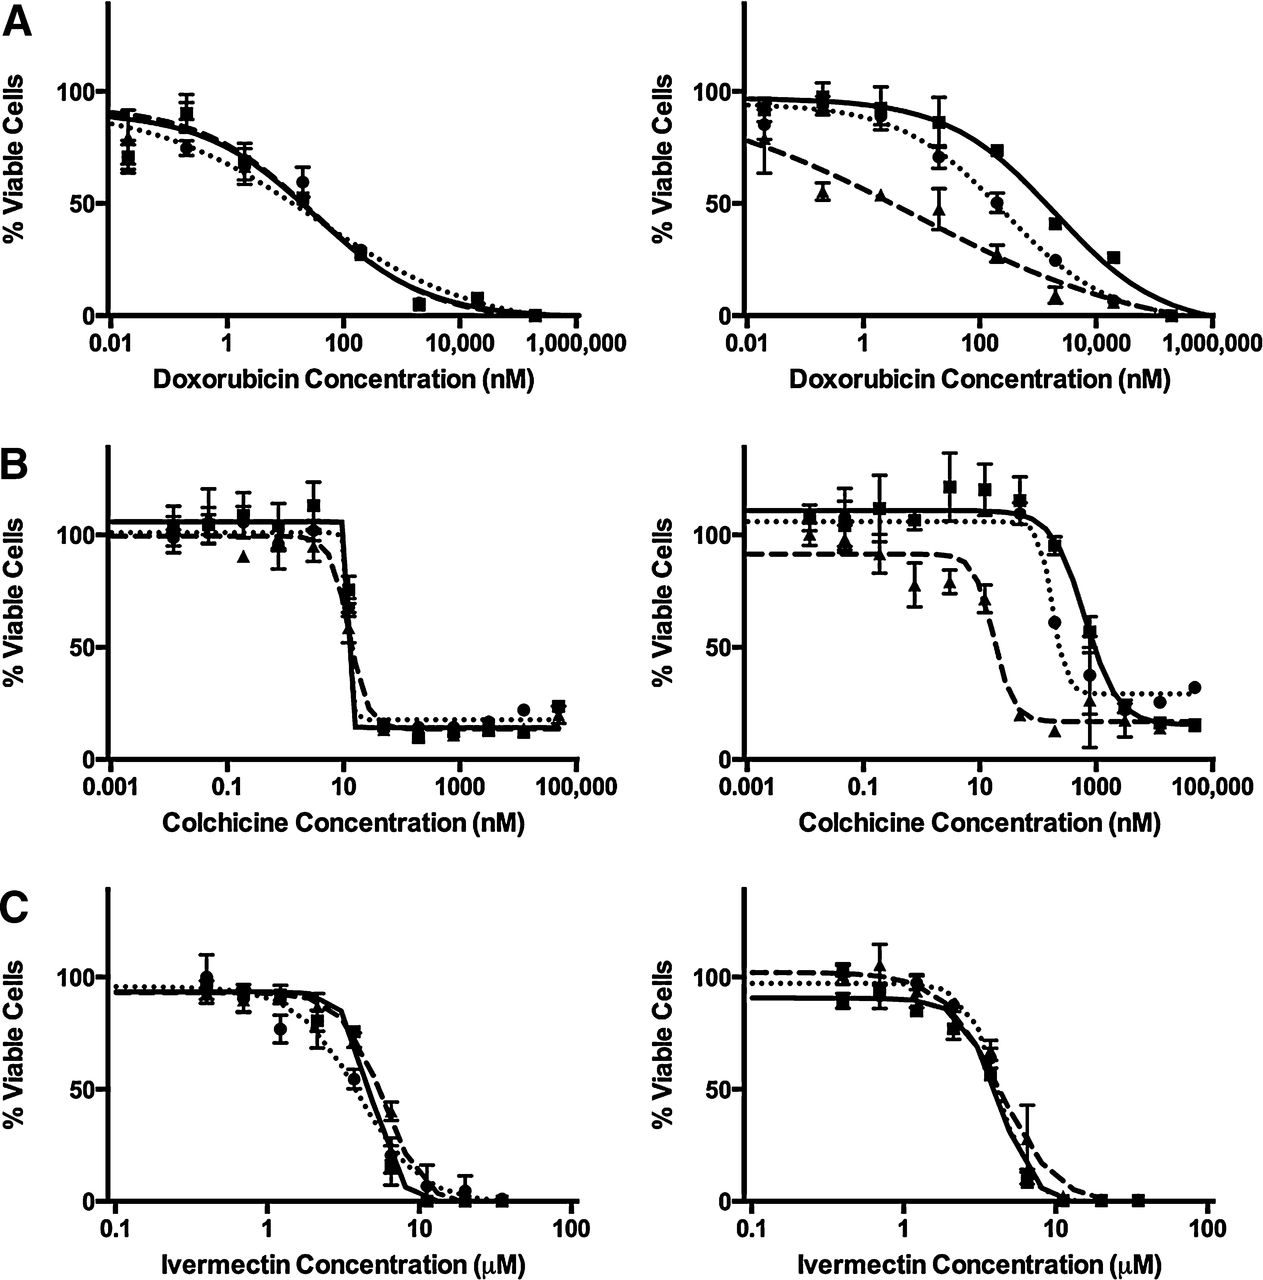 P-Glycoprotein Transport of Neurotoxic Pesticides